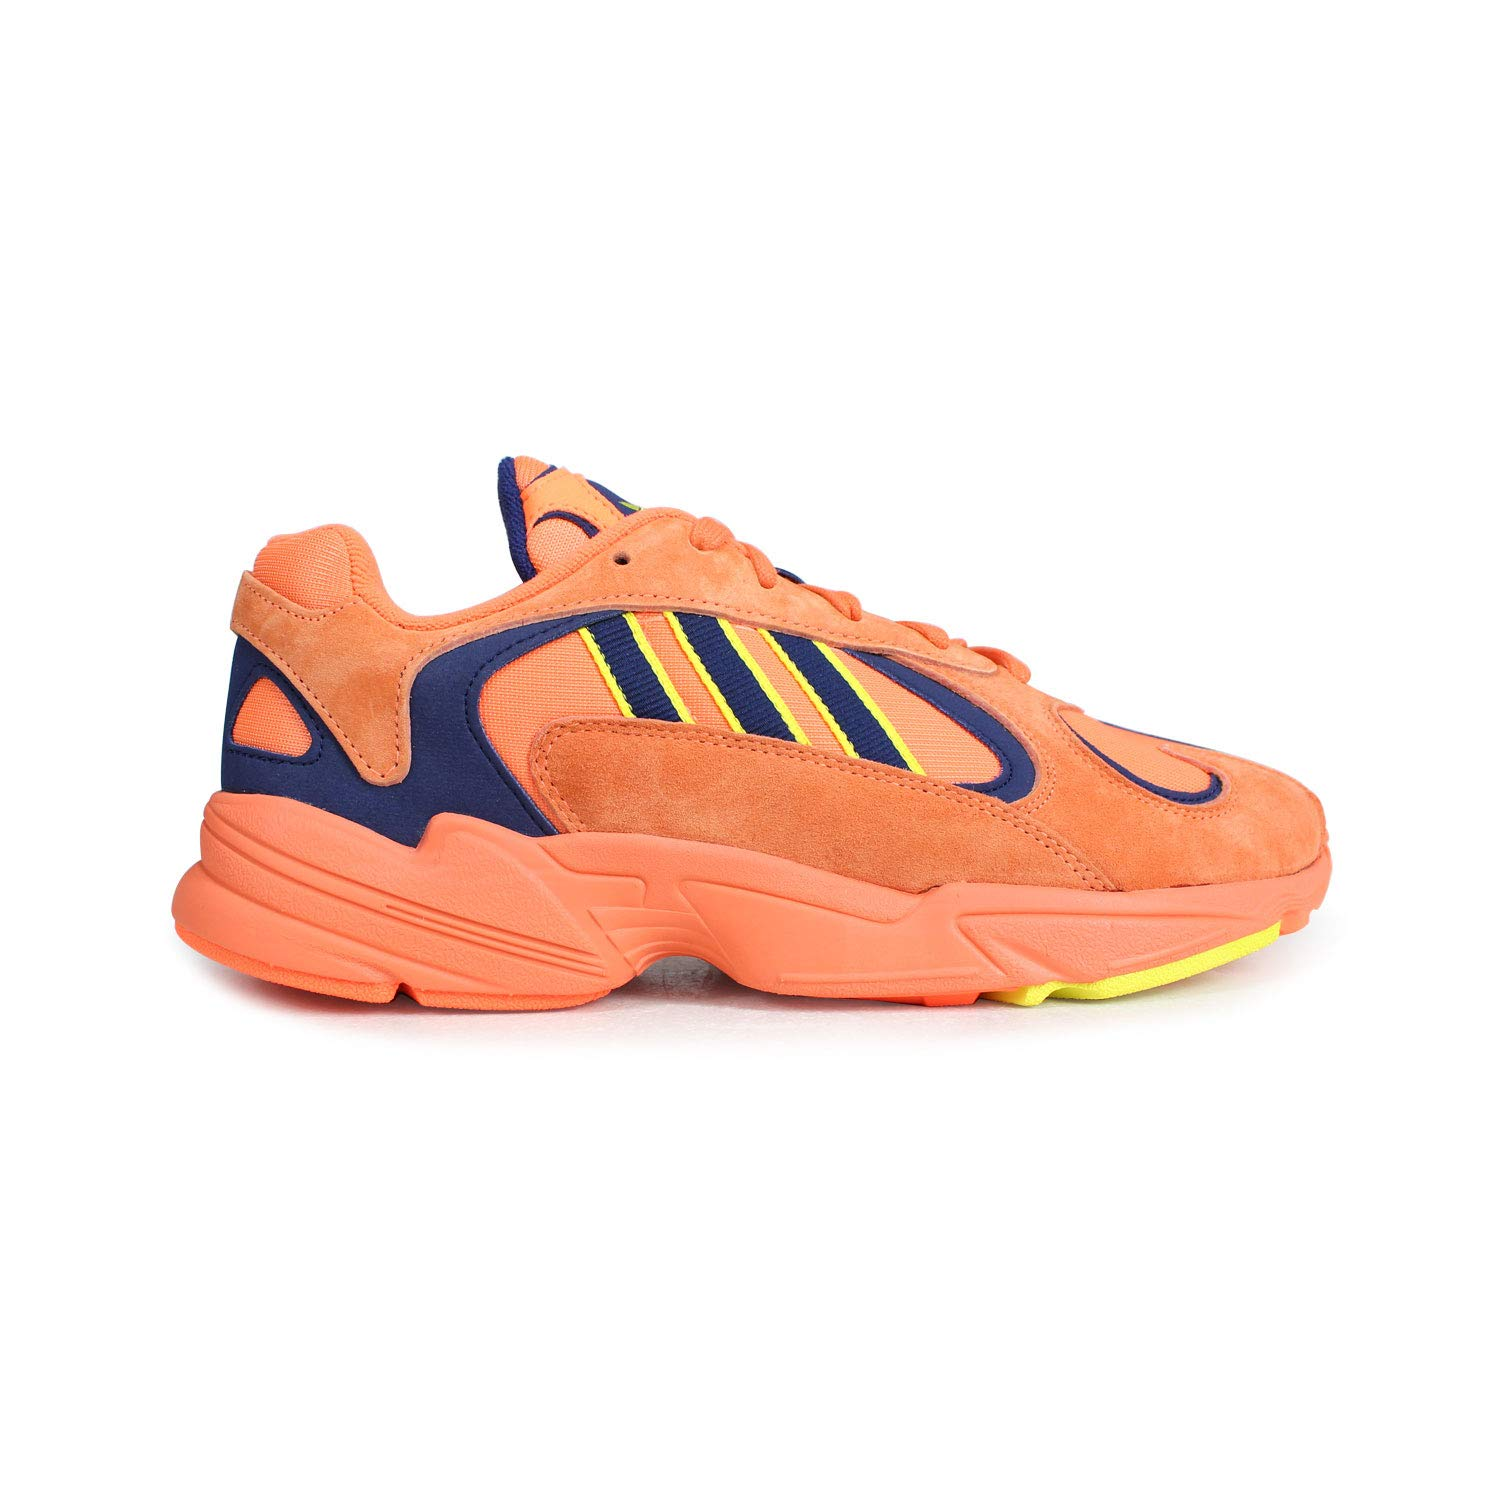 968a646445c023 adidas Yung -1 'Goku' - B37613: Amazon.co.uk: Shoes & Bags